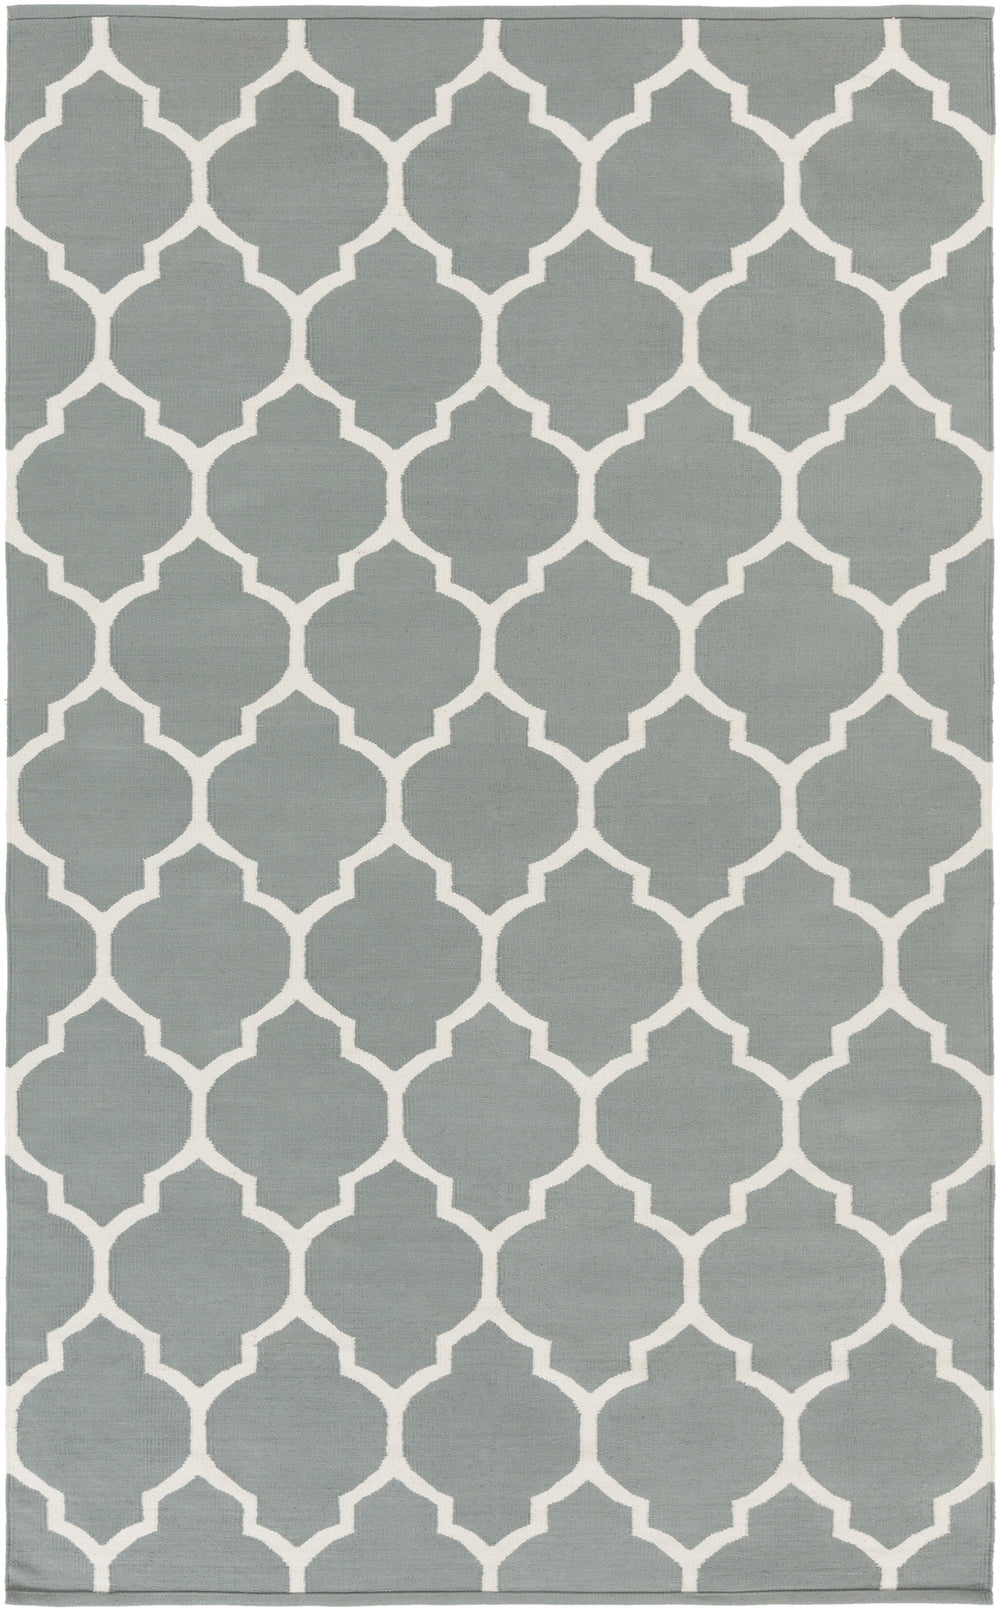 Artistic Weavers Vogue Claire AWLT3012 Area Rug